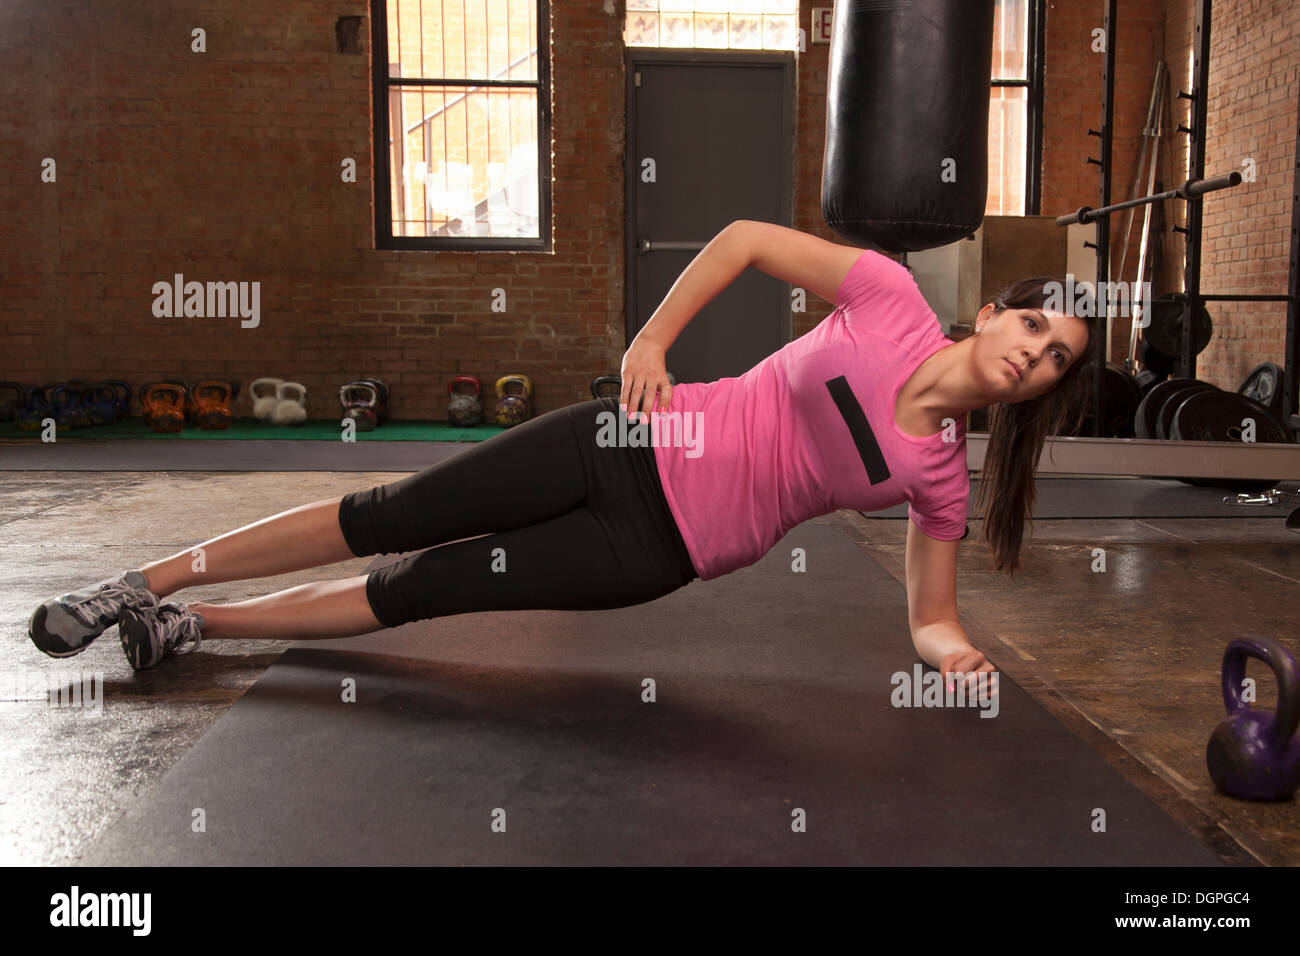 Young woman exercising on mat in gym - Stock Image